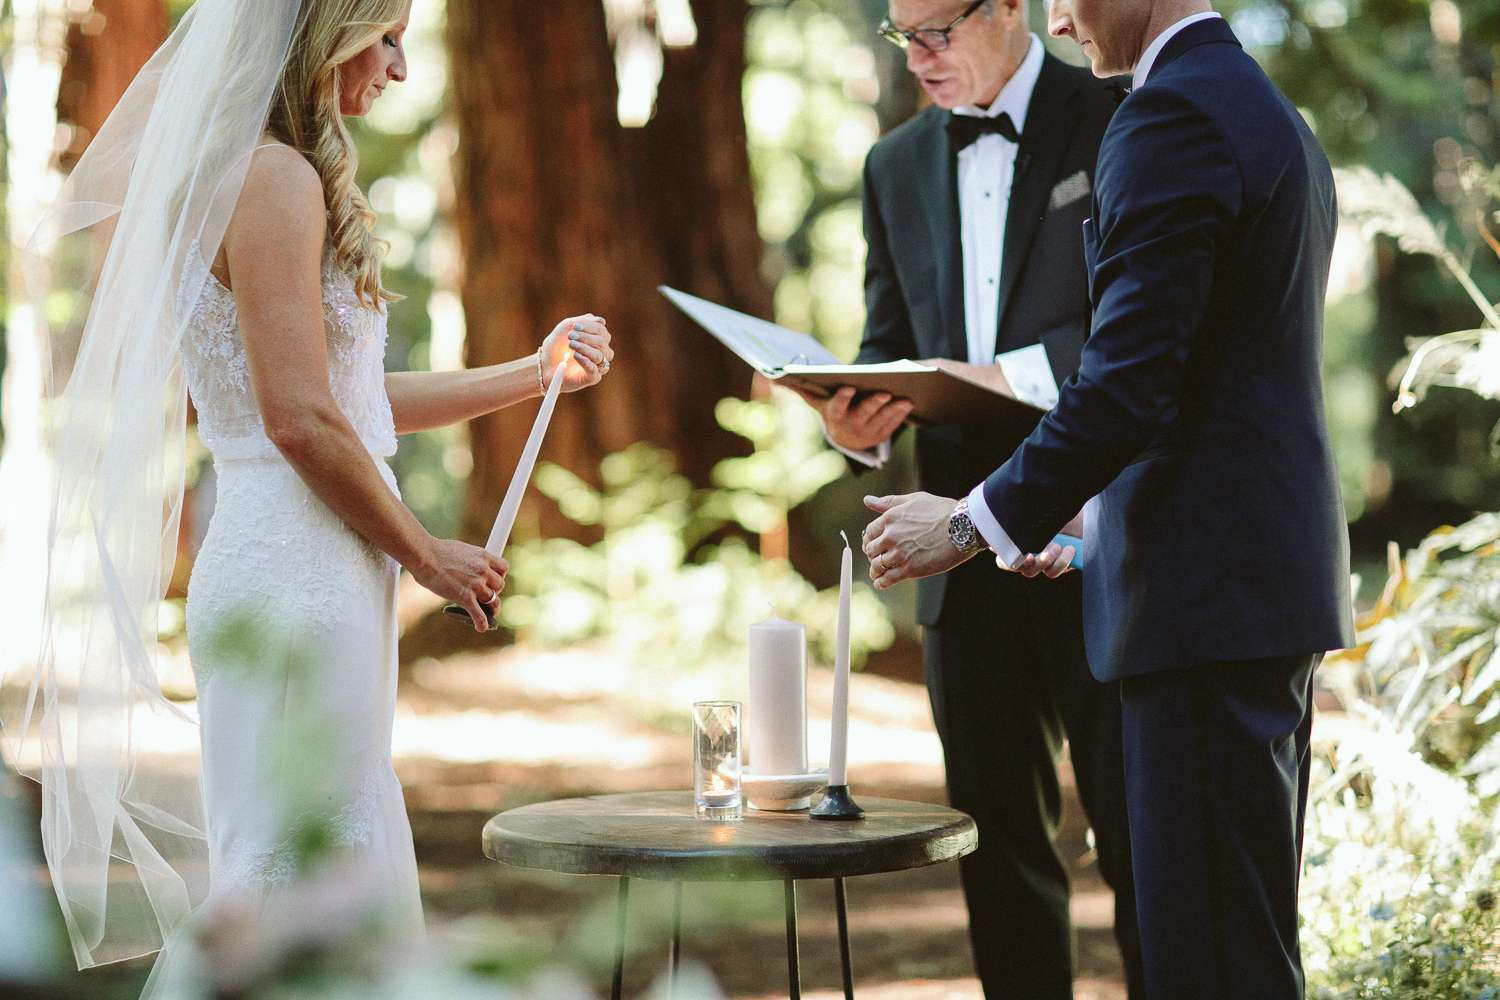 <p>candle ceremony</p><br><br>